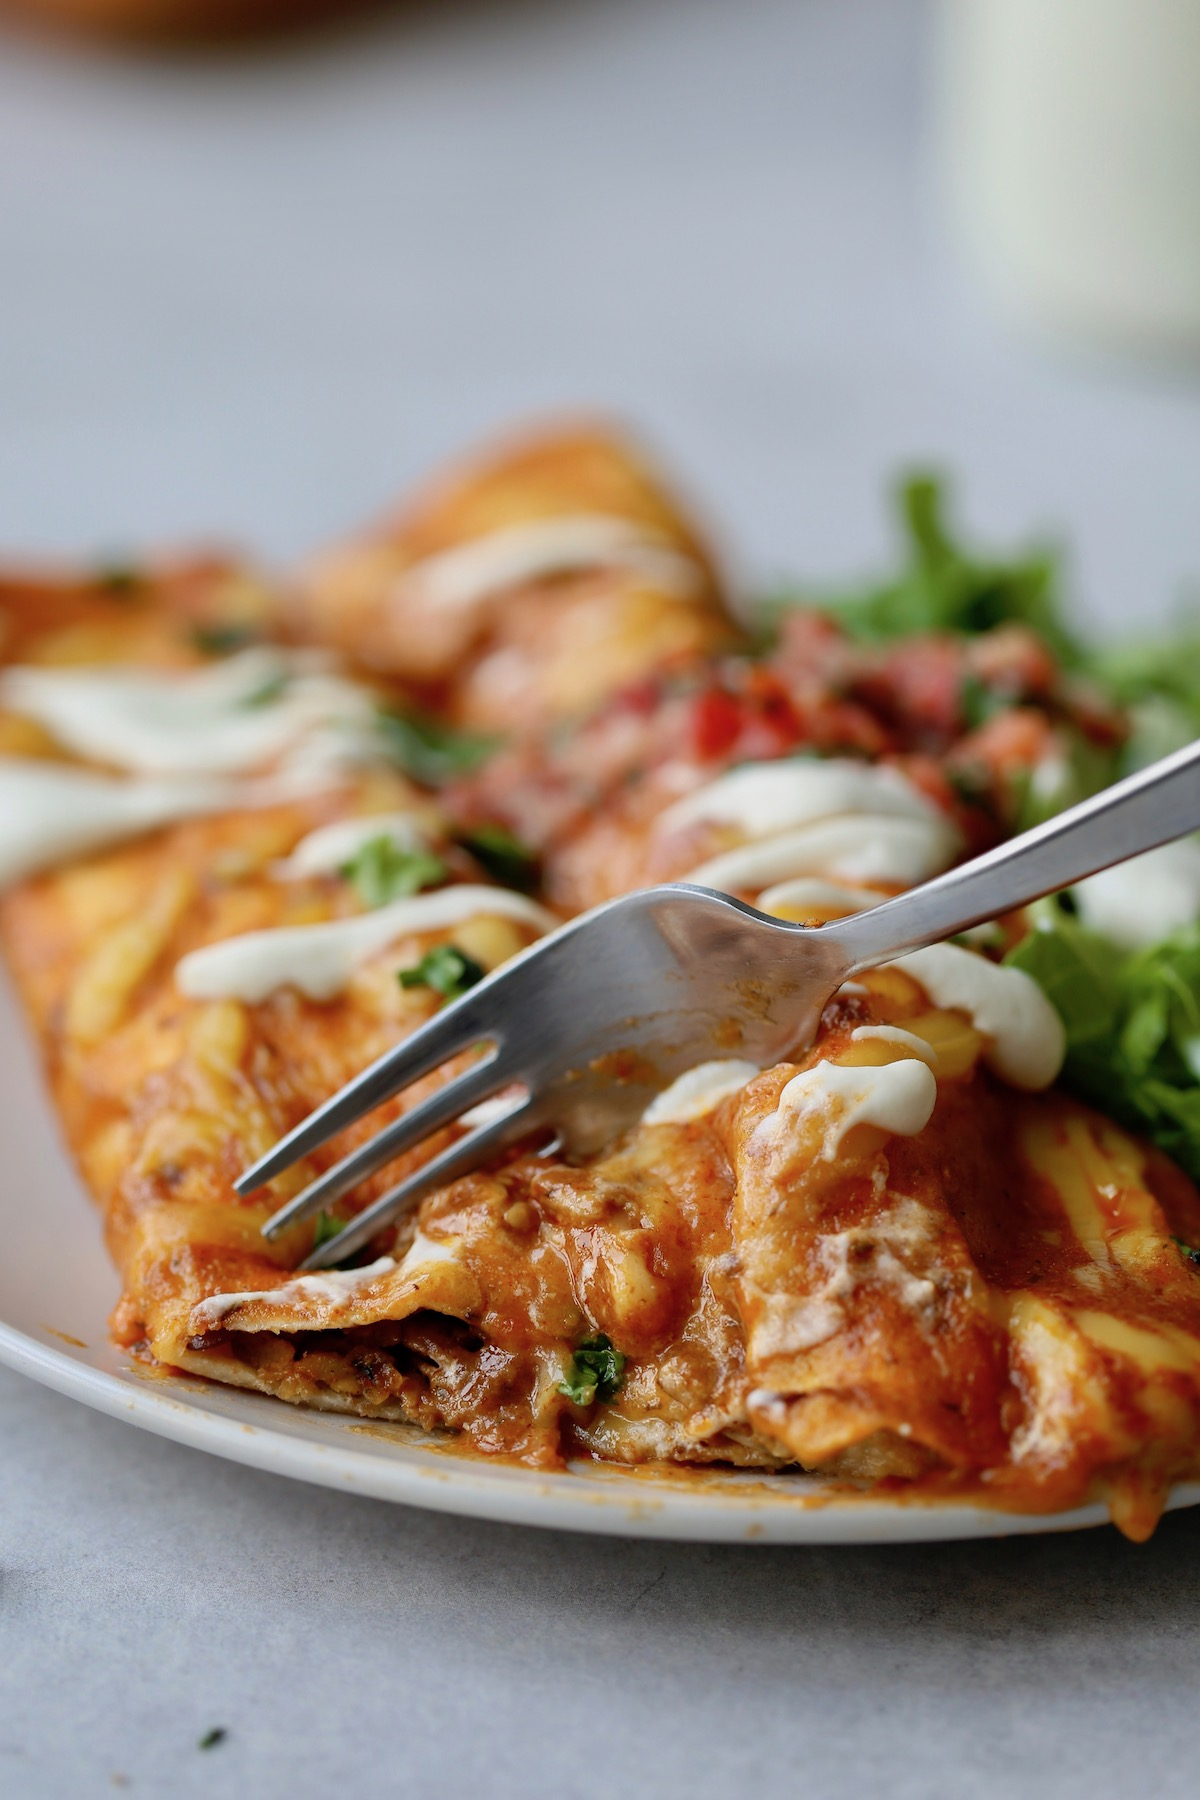 a fork cutting into cheesy vegan enchiladas